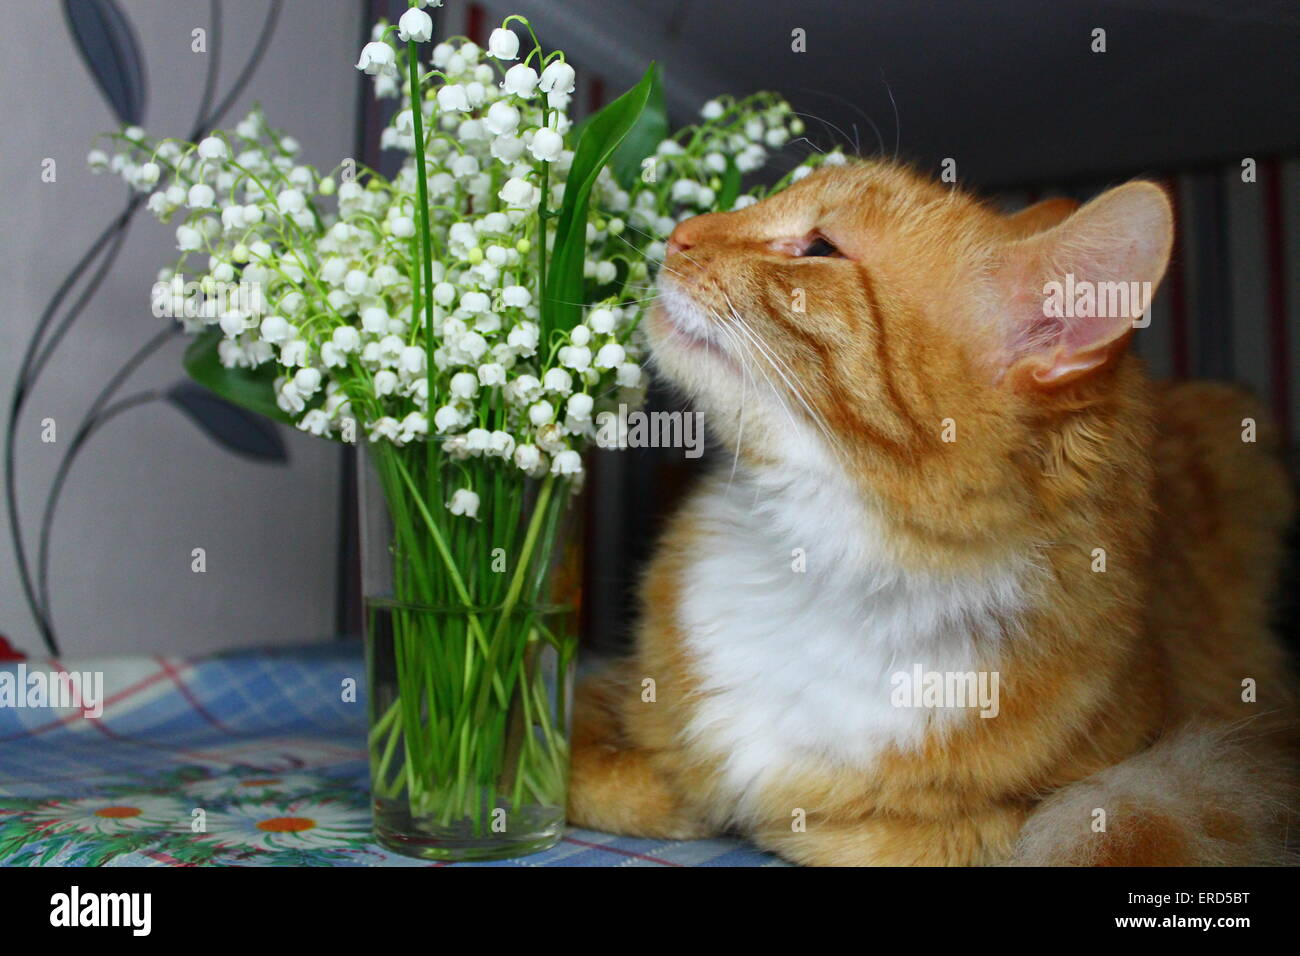 Ginger color cat smell aroma white lily of valley flowers stock ginger color cat smell aroma white lily of valley flowers izmirmasajfo